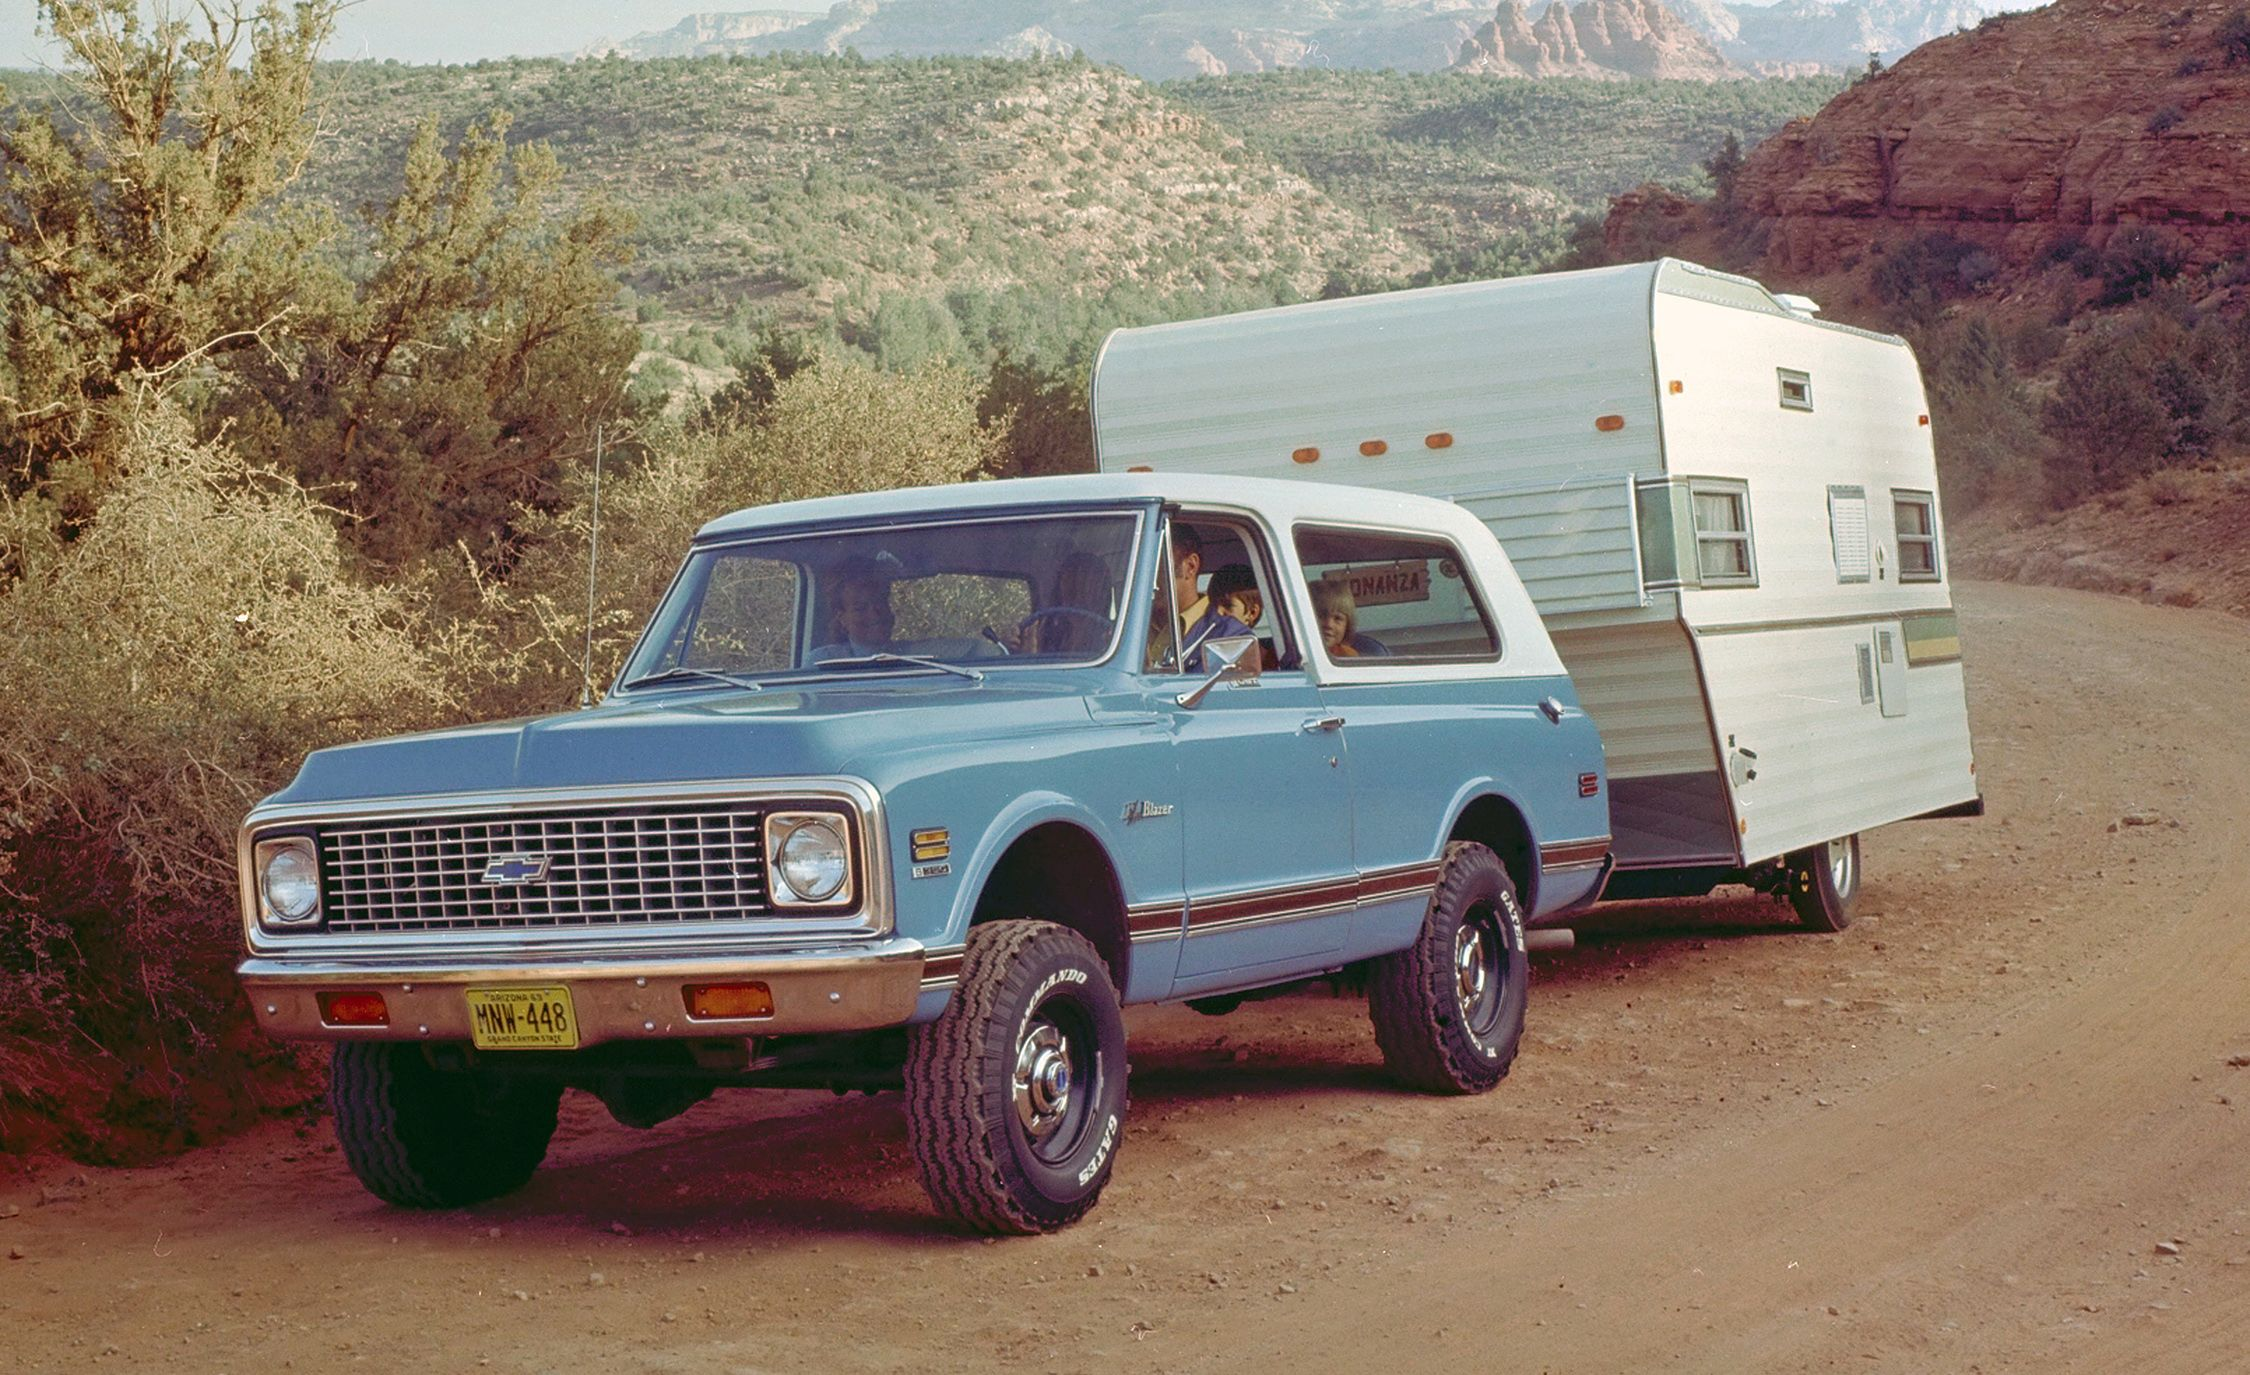 A Visual History Of The Chevrolet Blazer 1969 To Today